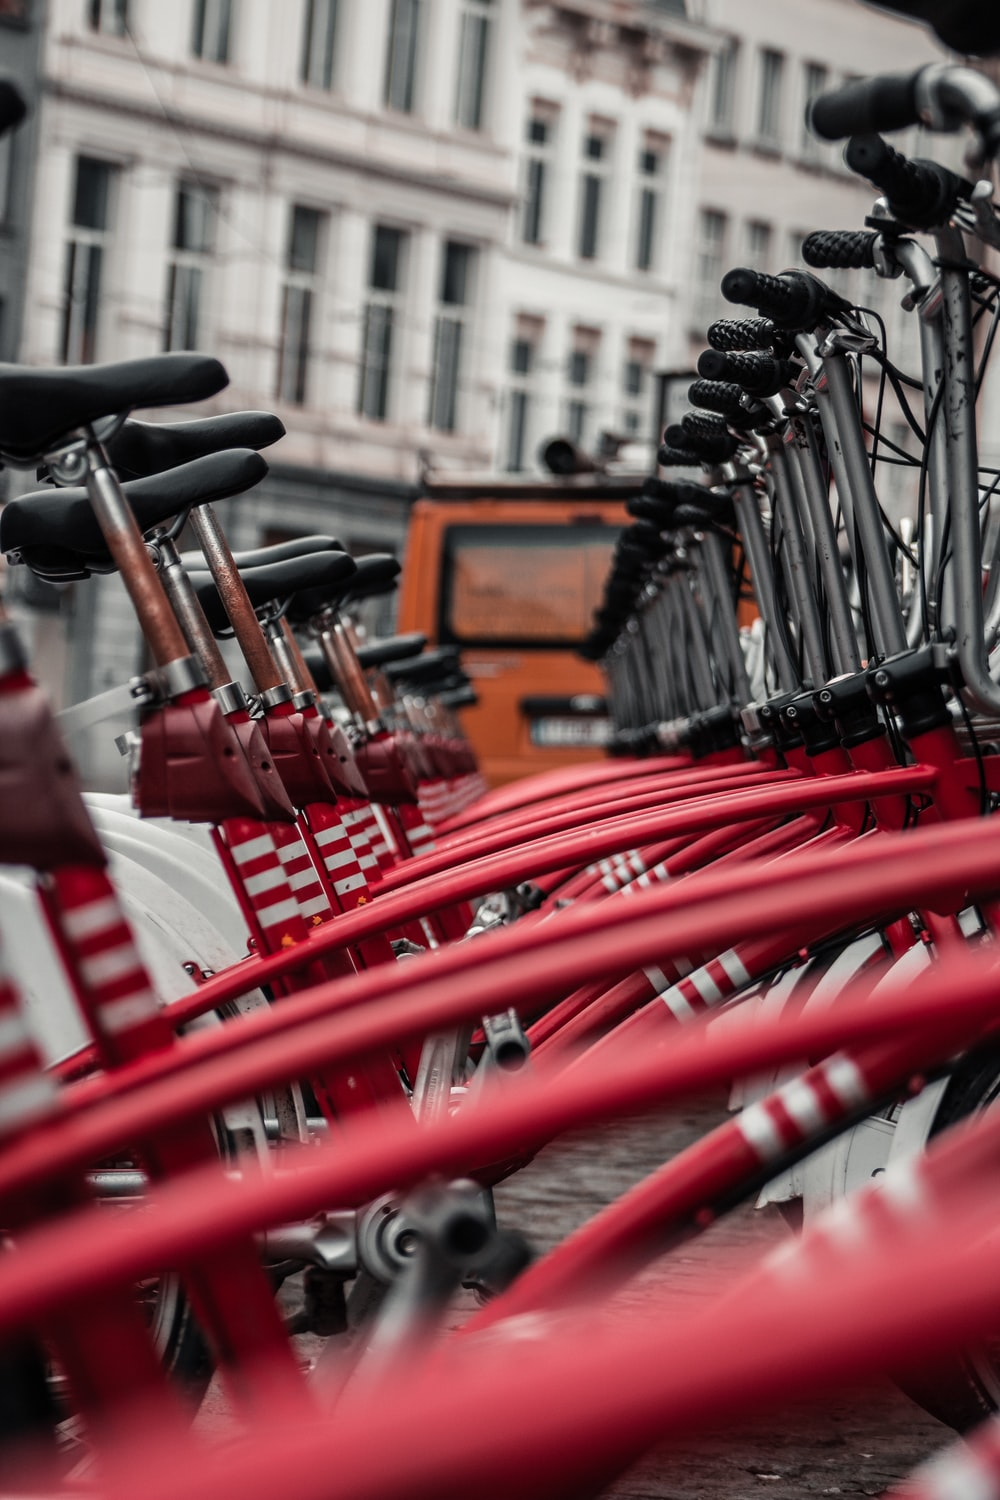 red bicycle parked on the street